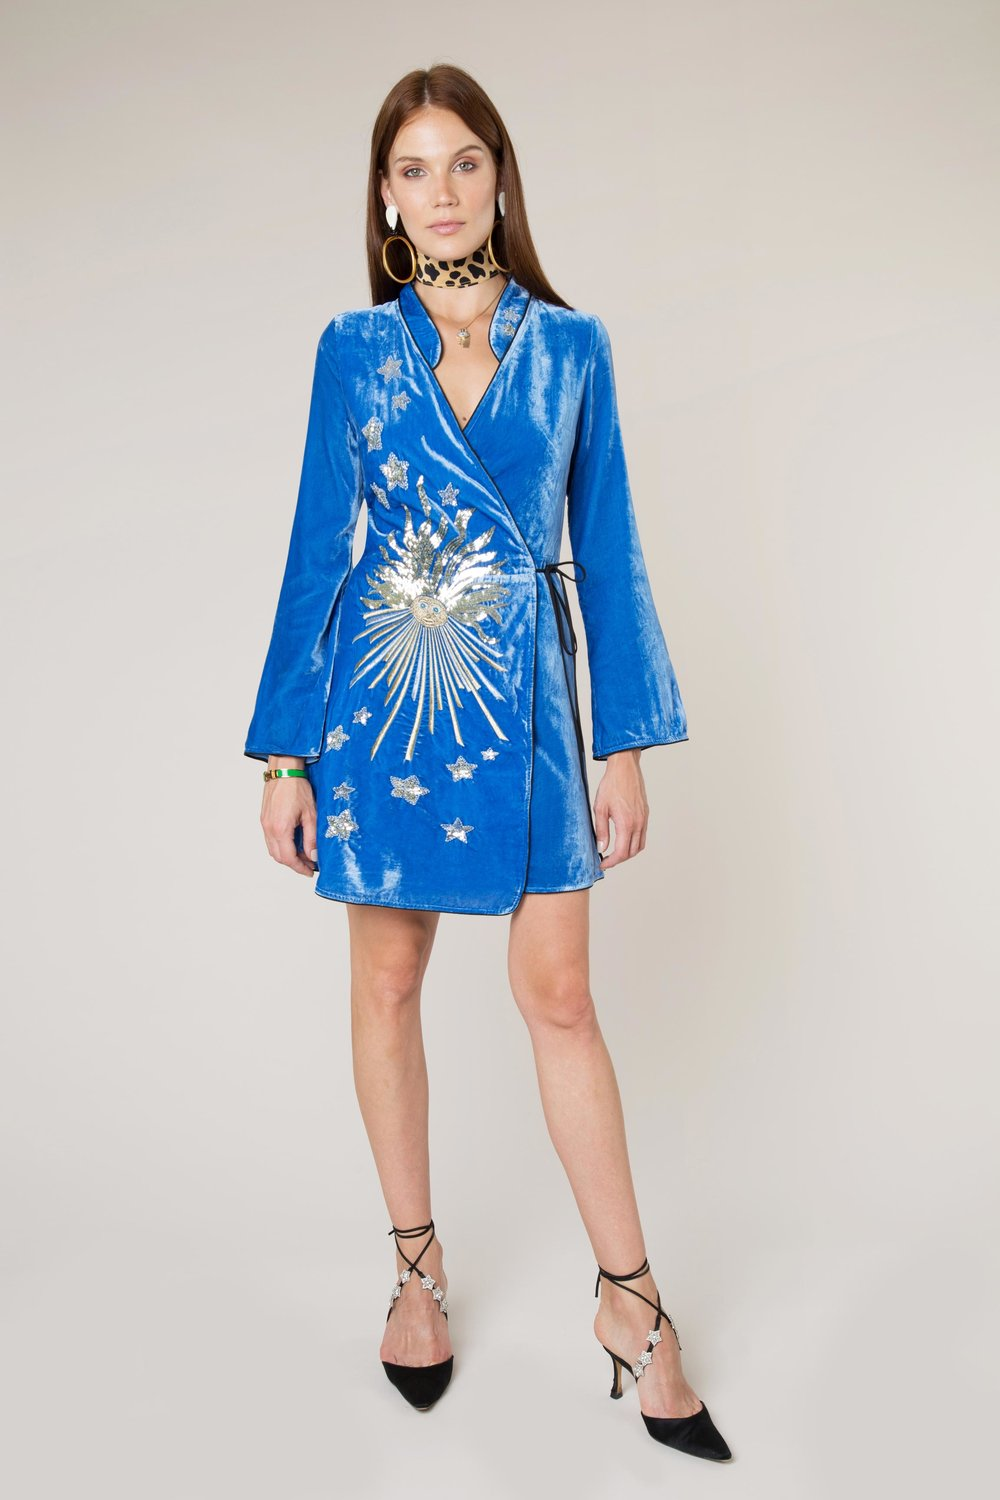 Rixo- Iris – Blue Embroidery Mini Wrap Dress- £295